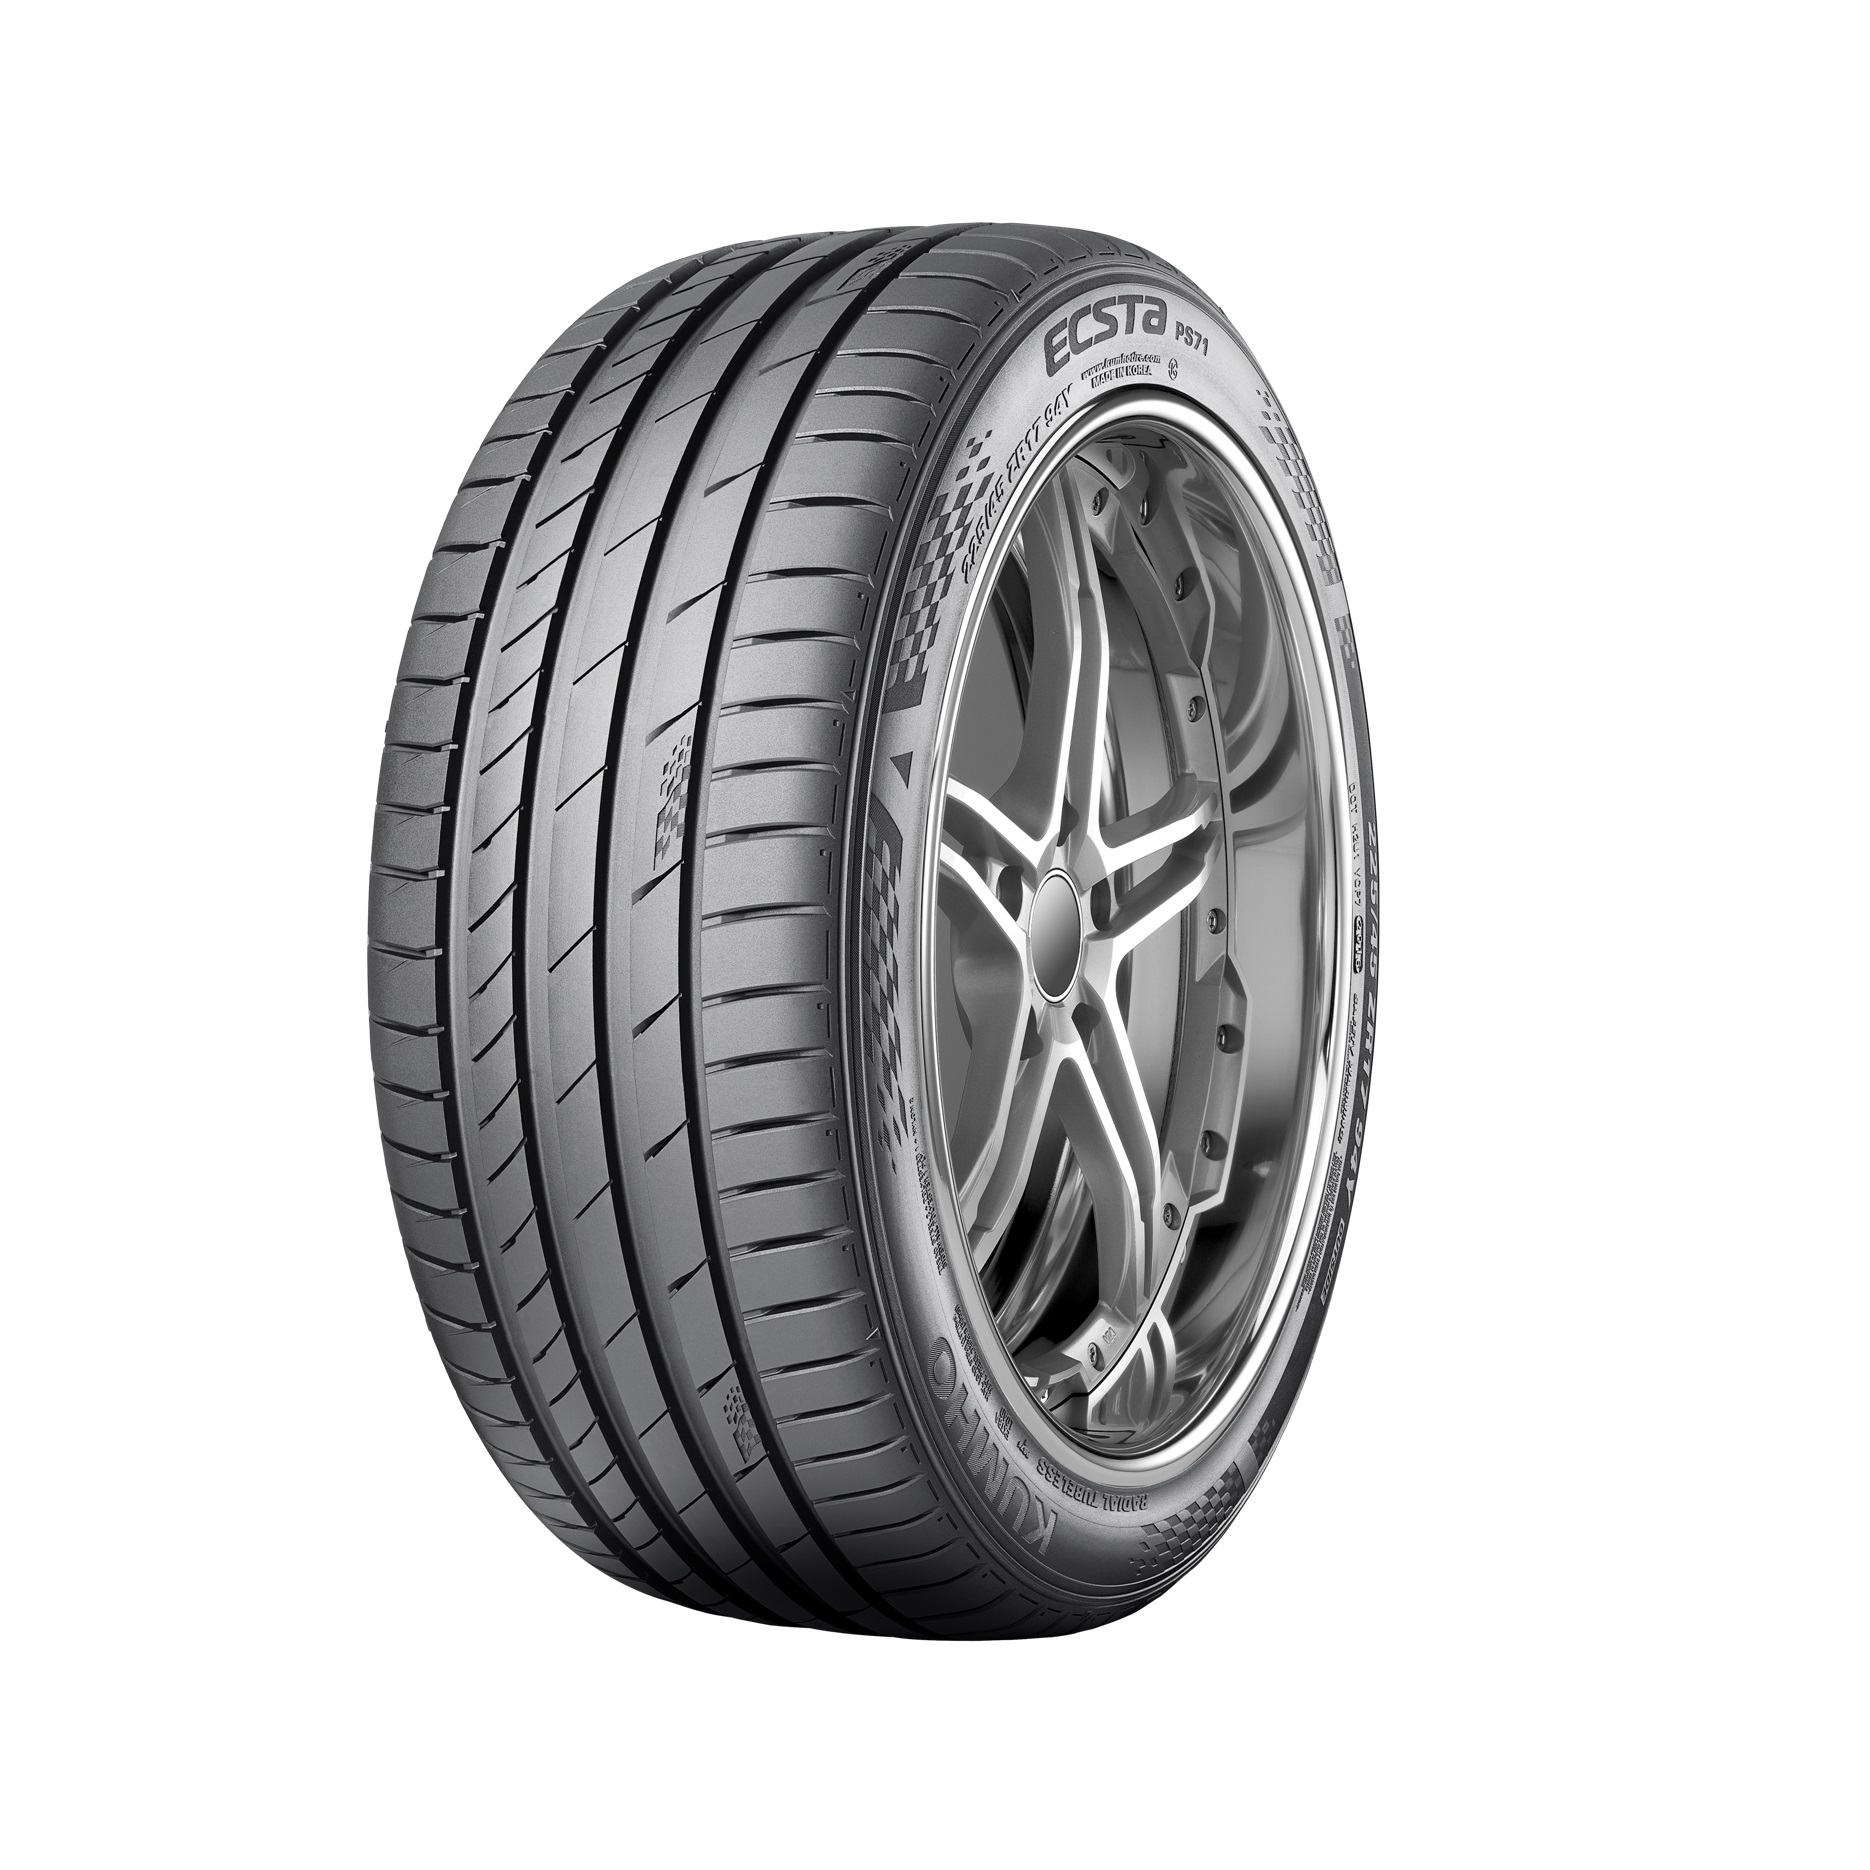 Anvelopa vara KUMHO PS71 XL 245/30 R20 90Y